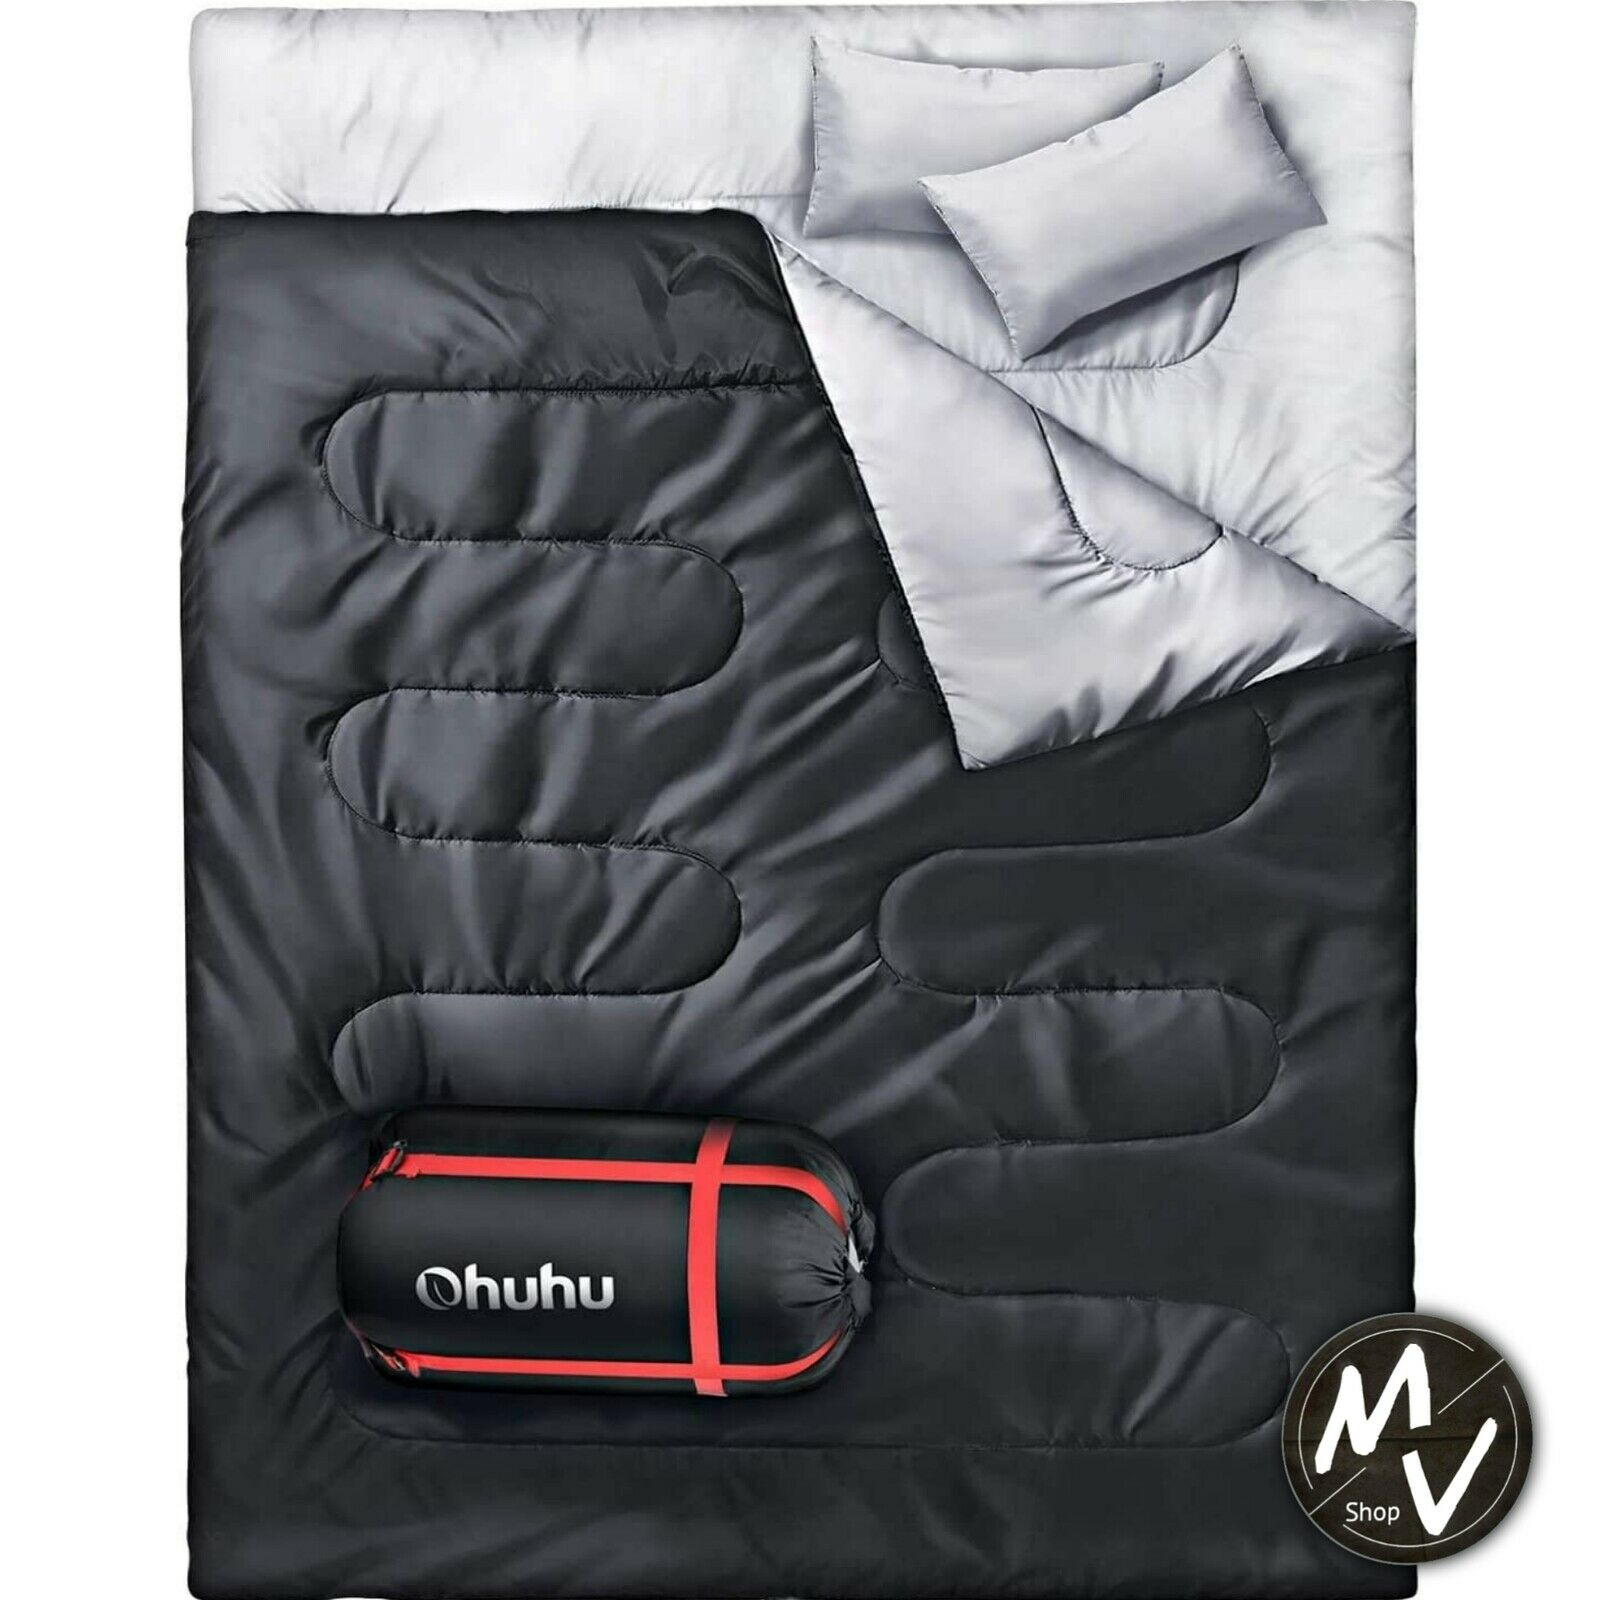 Easy to Carry Suitable for 3-4 S Double Sleeping Bag//Super Large Sleeping Bag